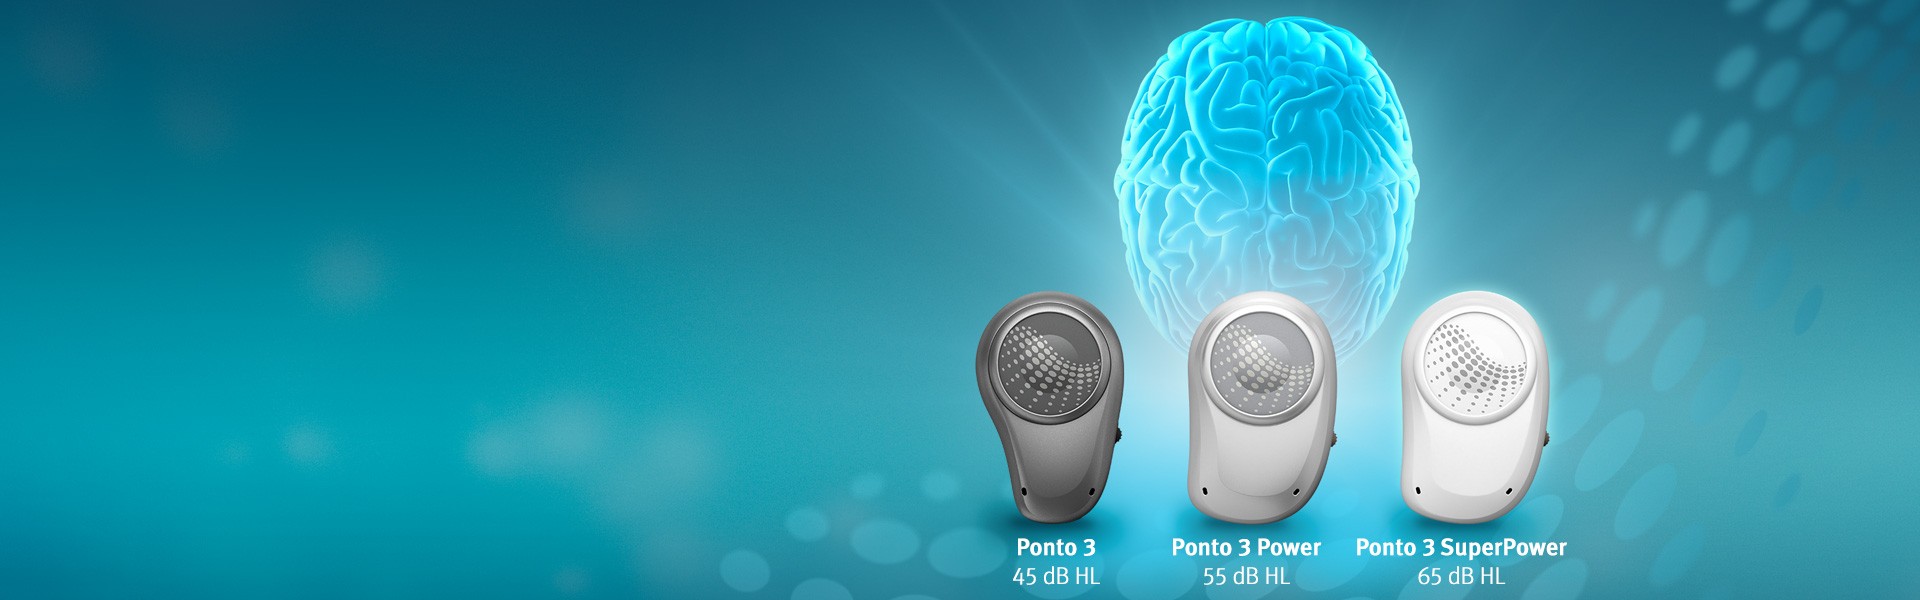 The newest Ponto sound processors support the brain to make listening easier and help make sense of the sounds around you.